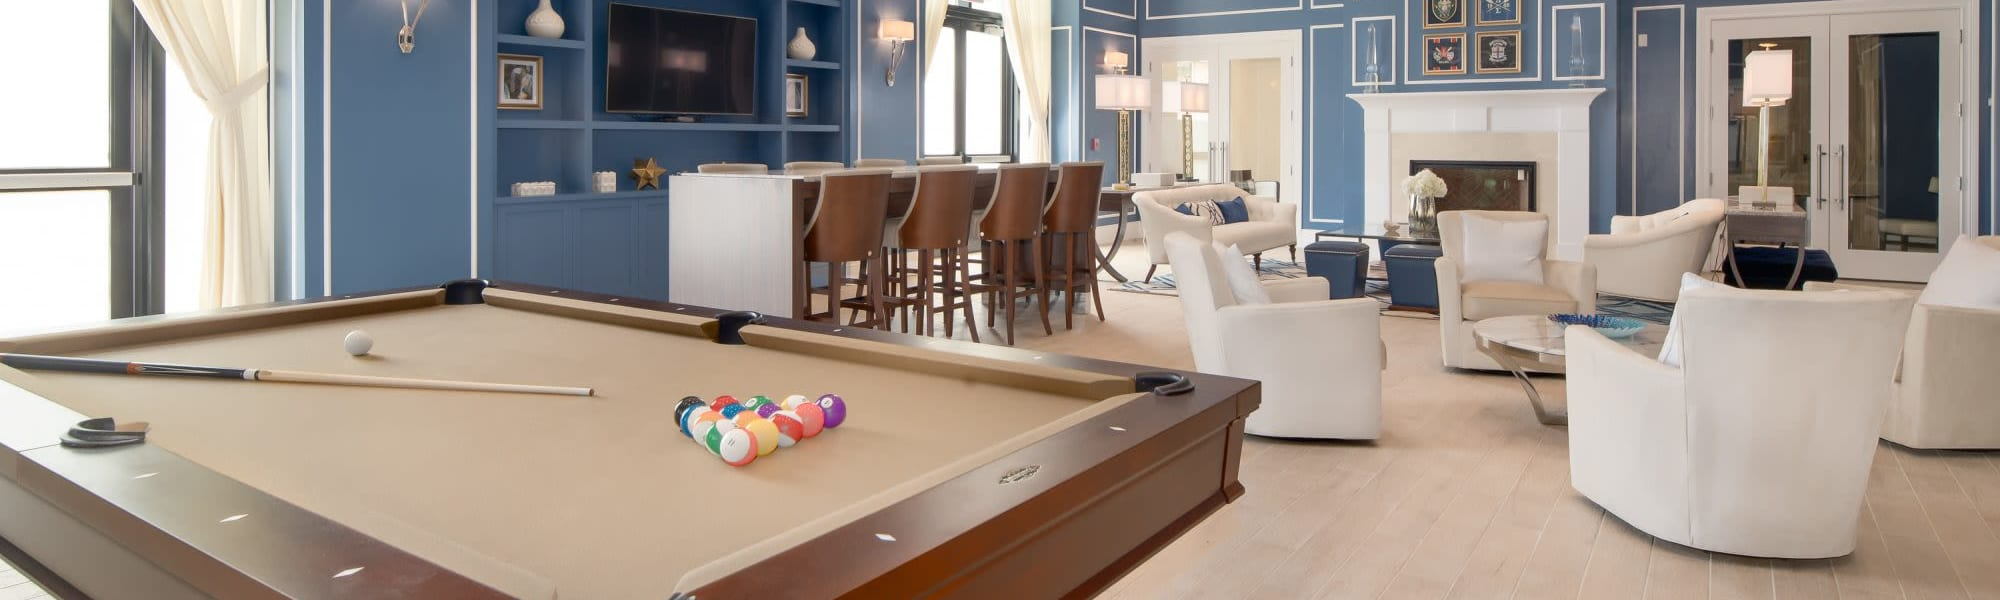 Amenities at The Royal Belmont in Belmont, Massachusetts